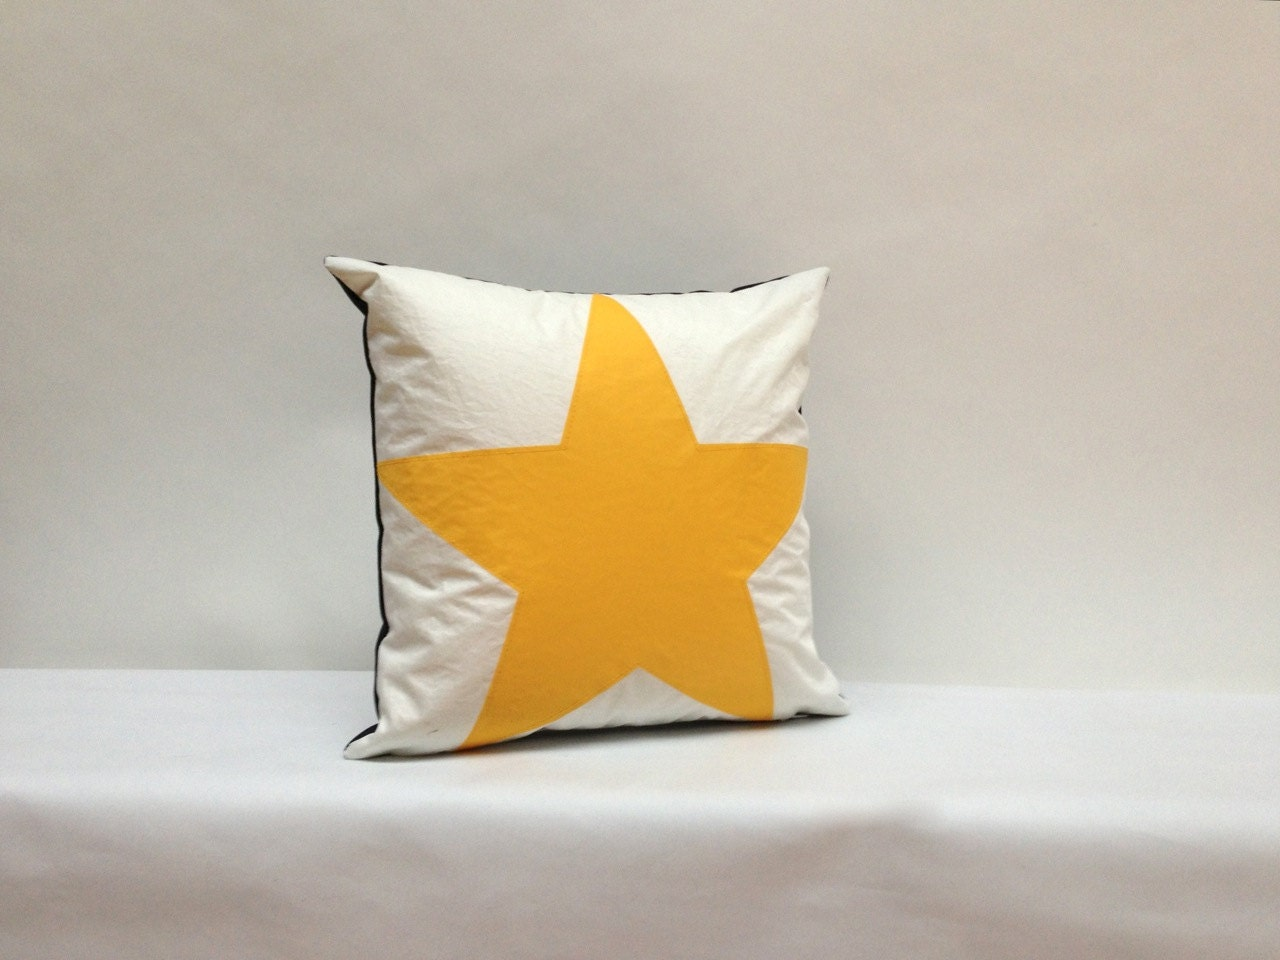 Items similar to Recycled Sail Throw Pillows - Yellow Star on Etsy